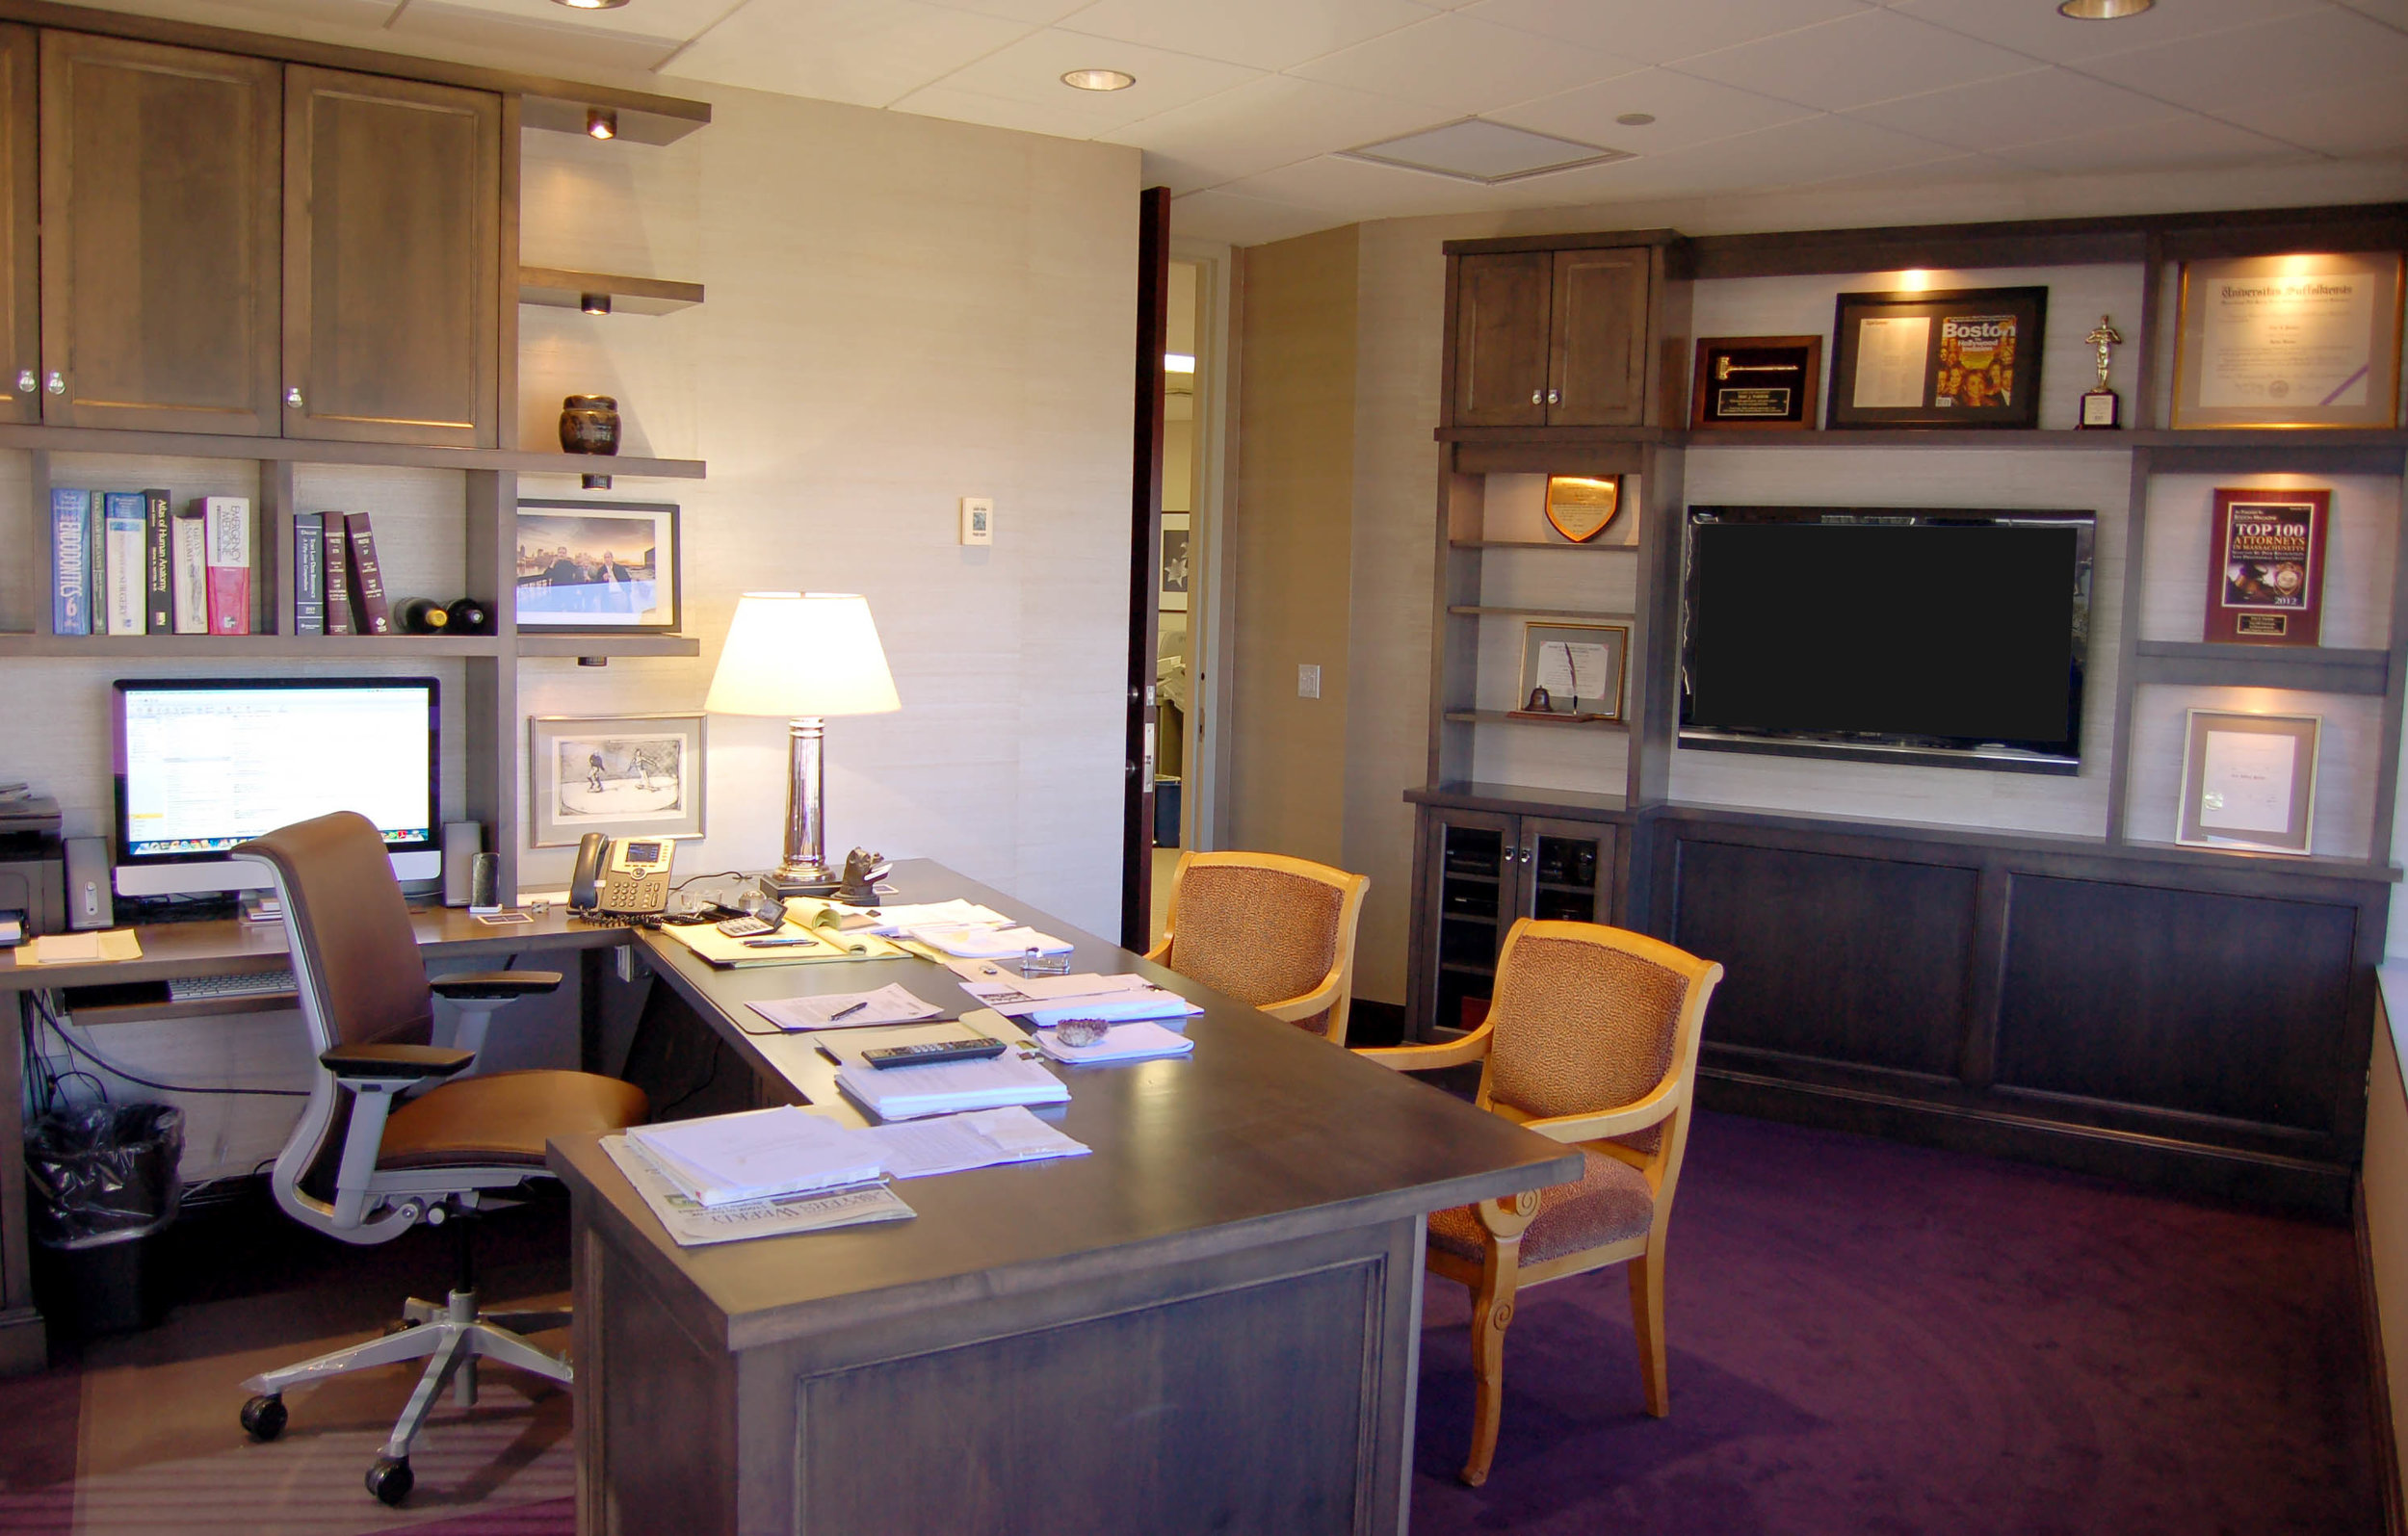 Honore-Cabinetry-custom-built-in-office-desk-bookcase-shelves.jpg